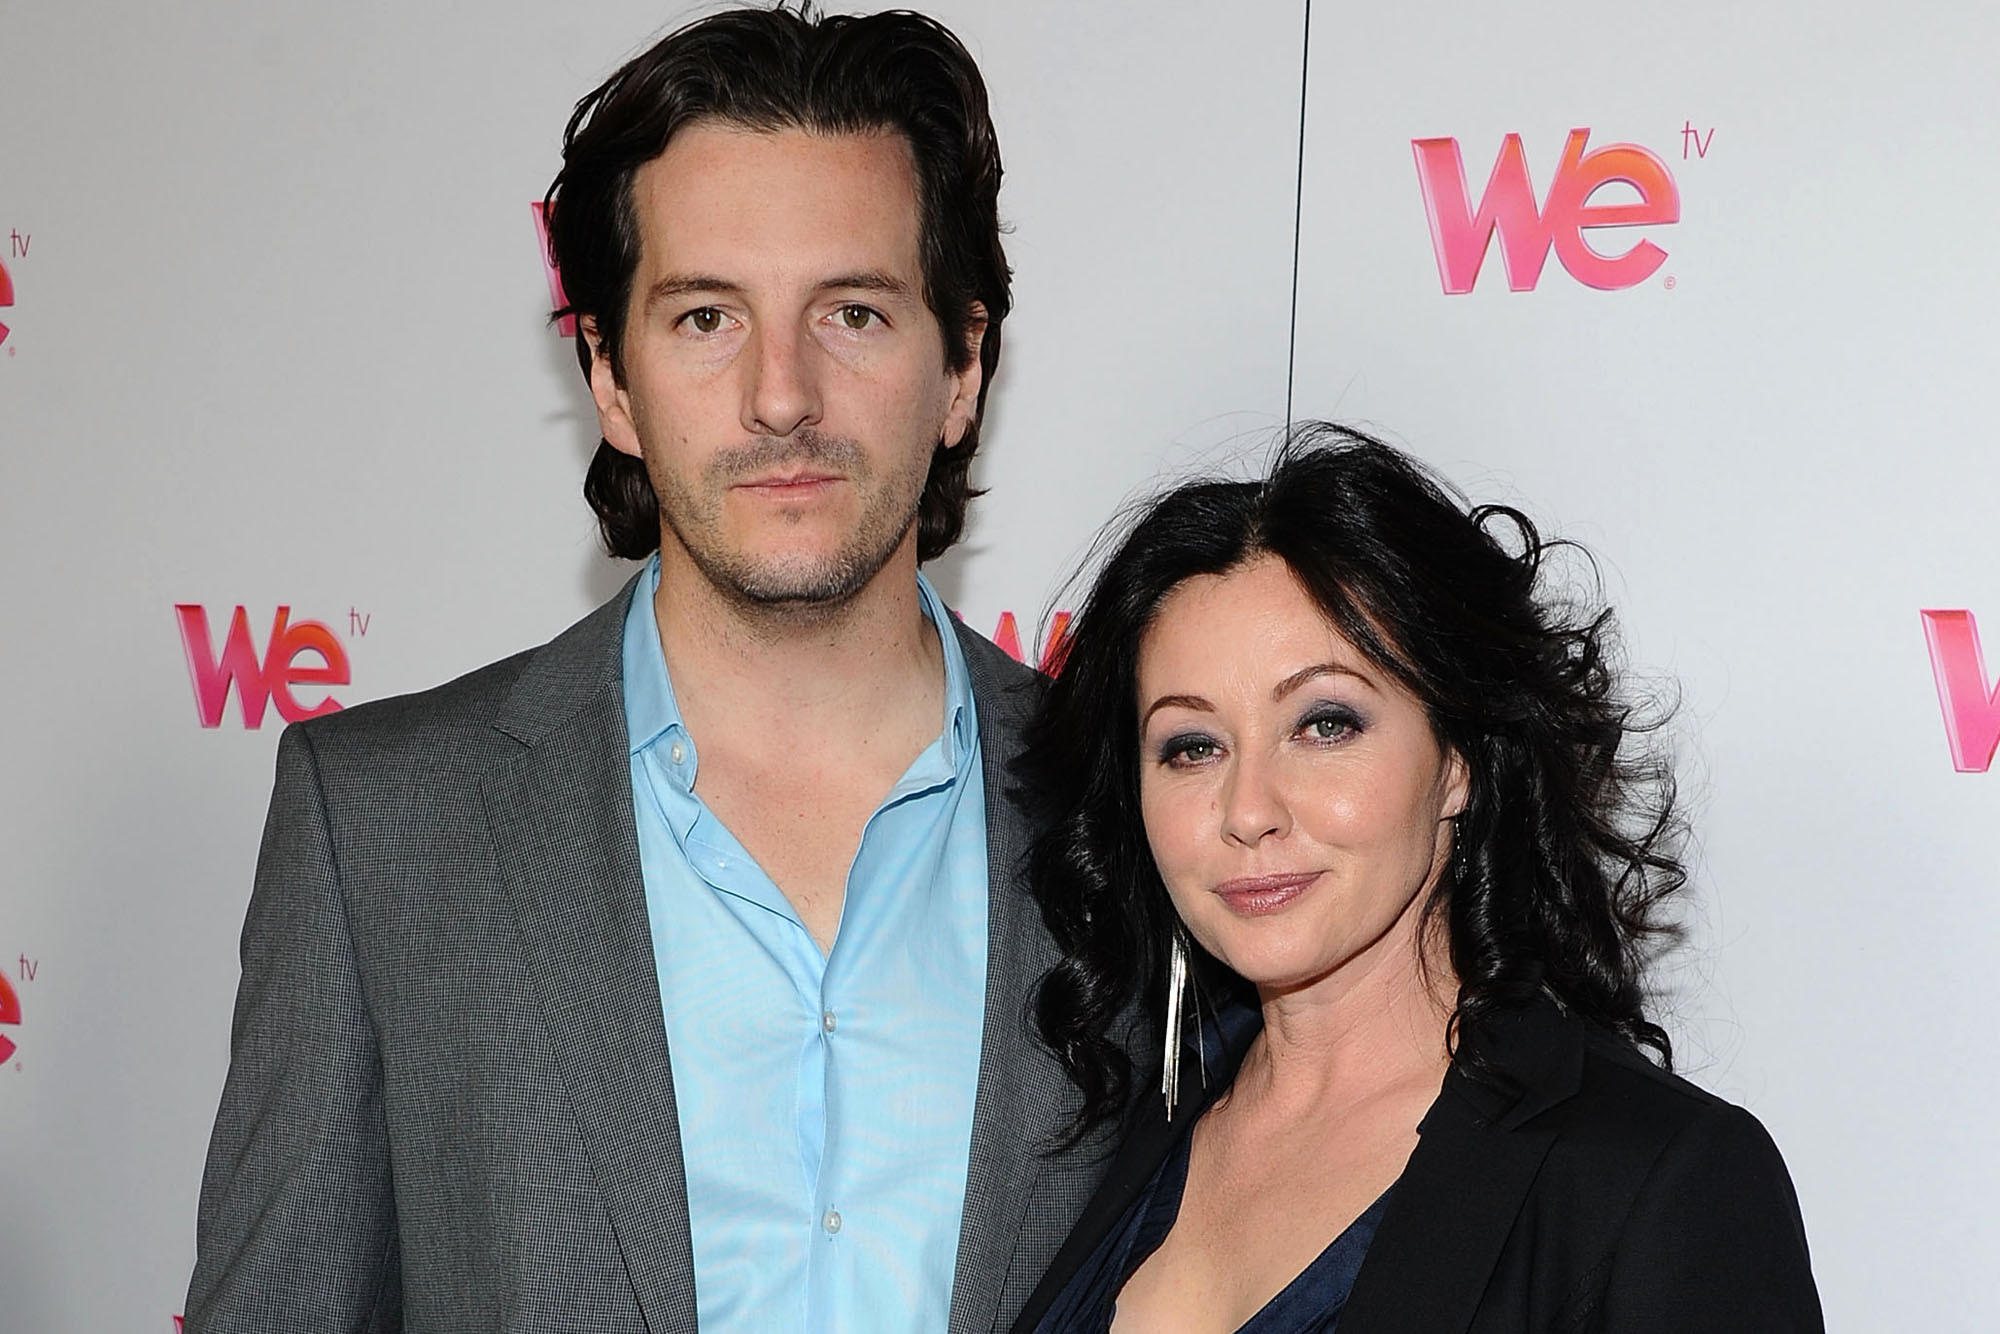 Shannen Doherty with her husband